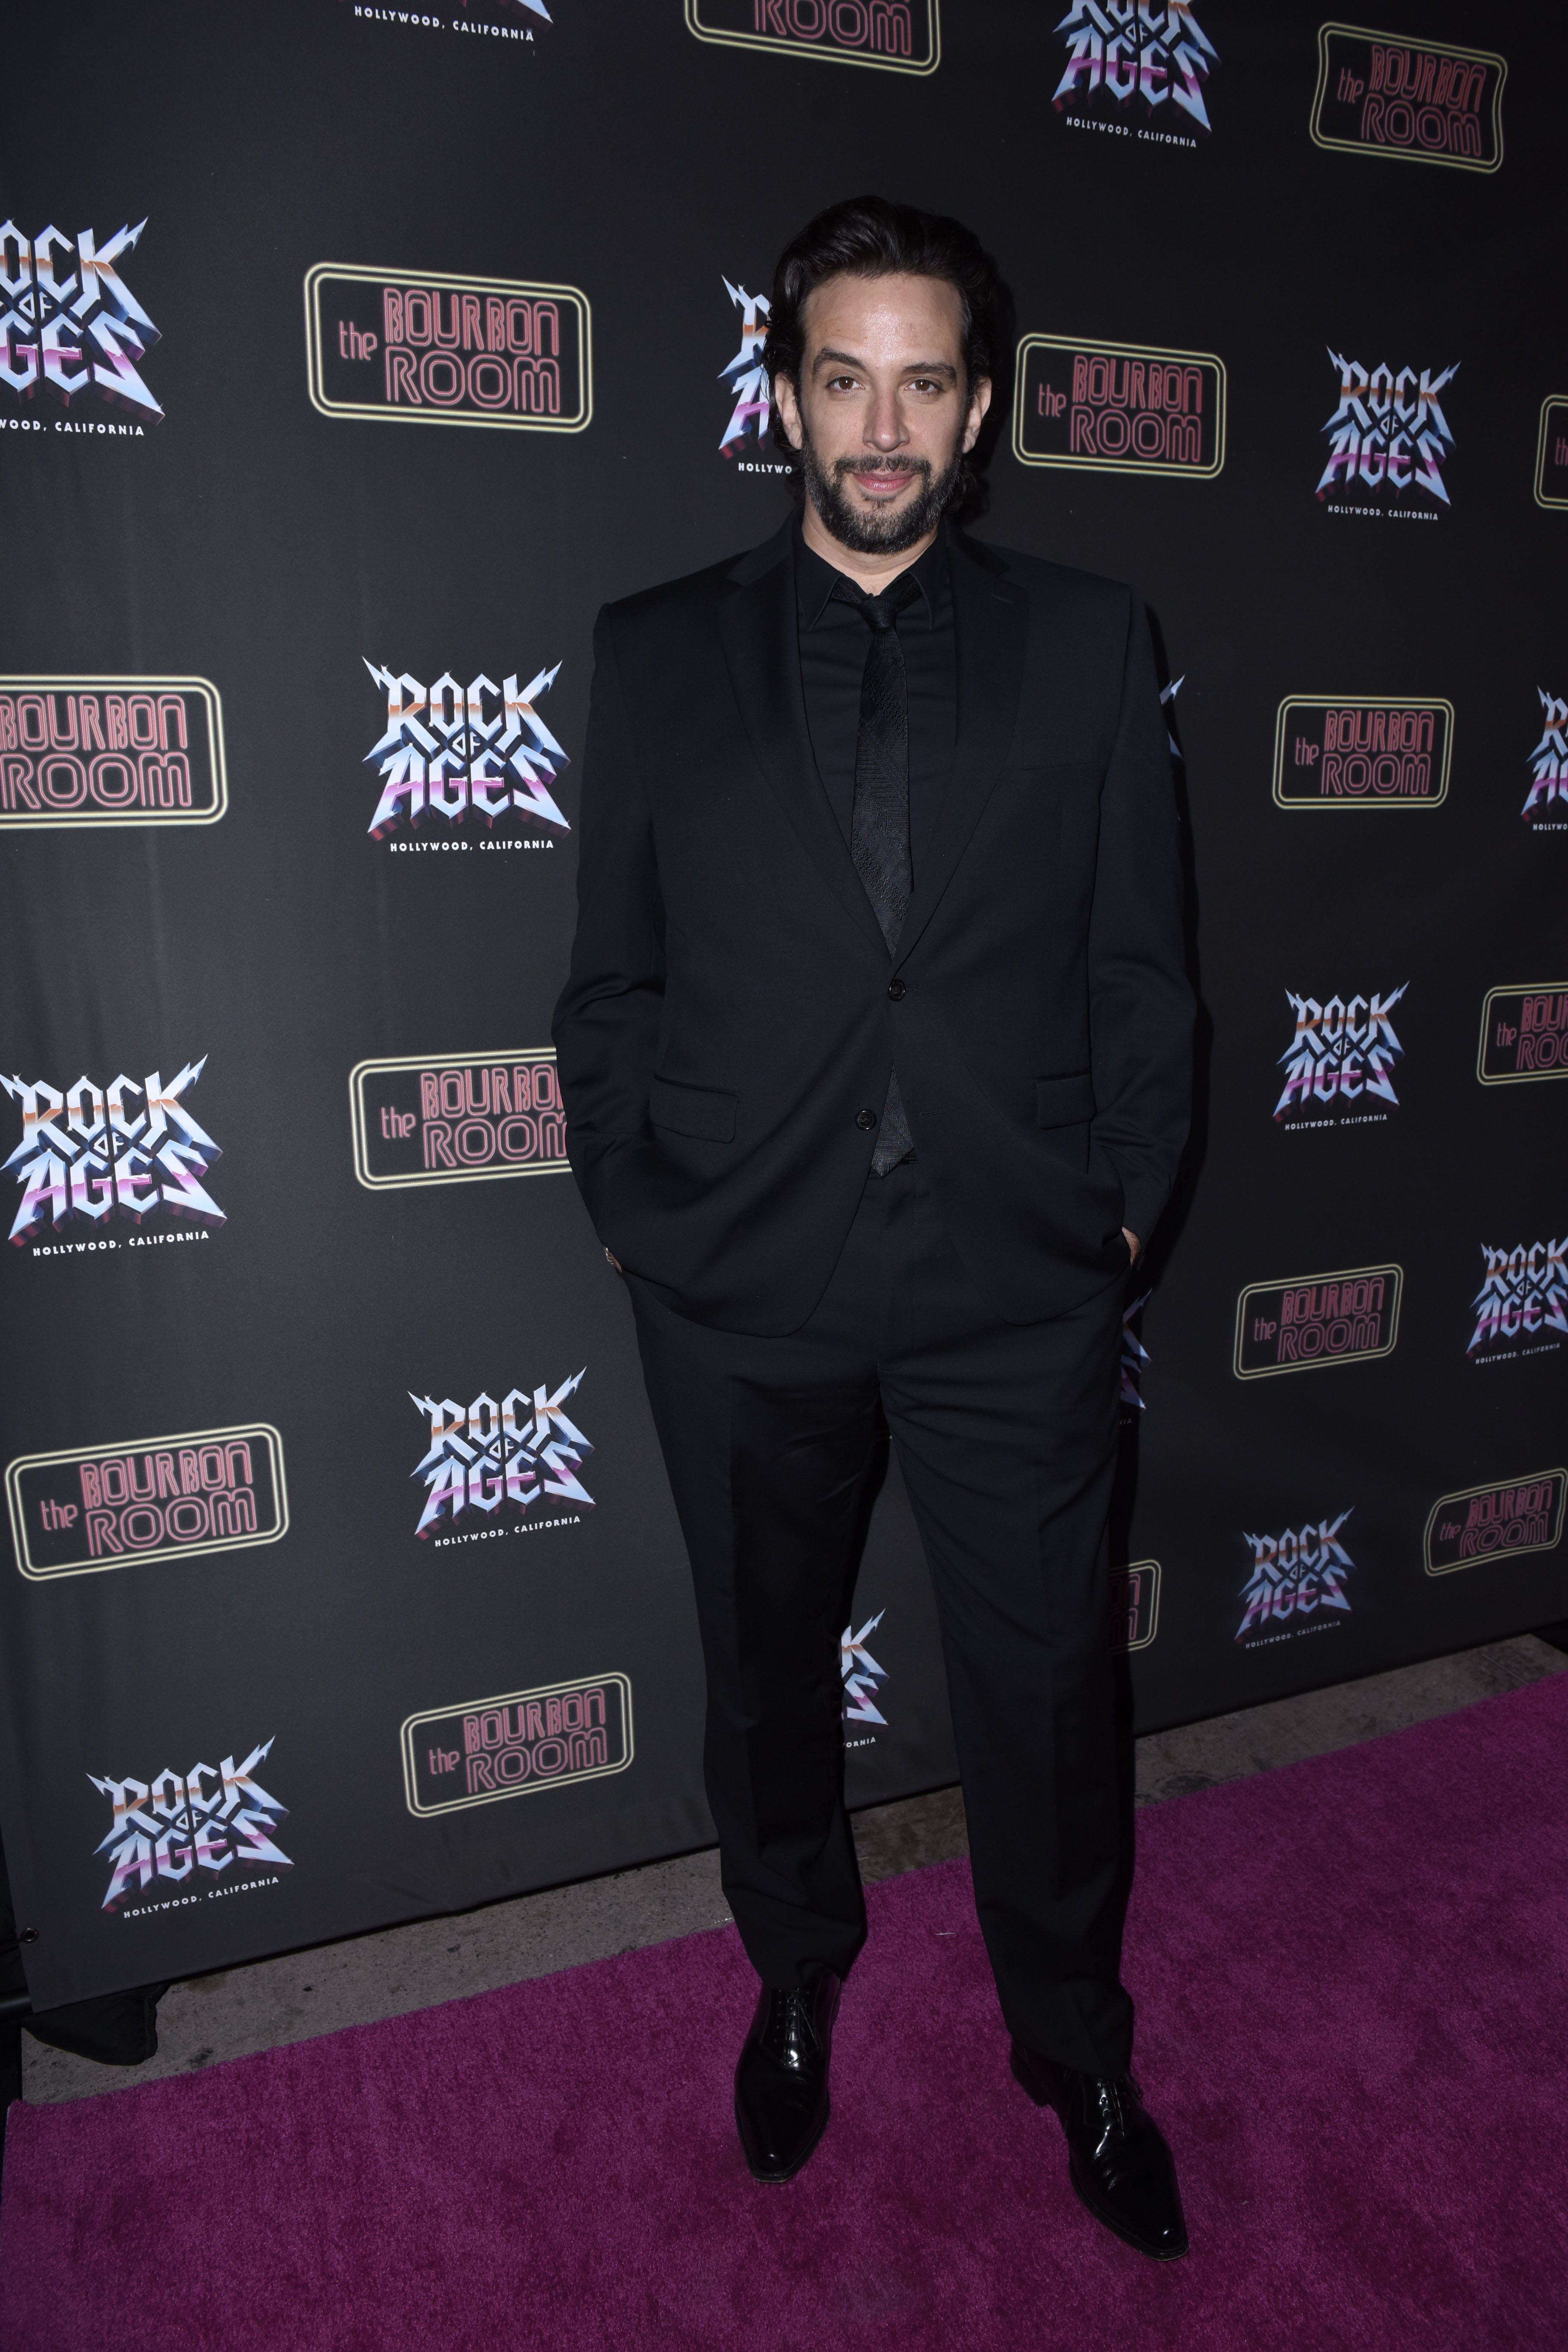 Nick Cordero attends opening night of Rock of Ages Hollywood in Hollywood, California on January 15, 2020 | Photo: Getty Images